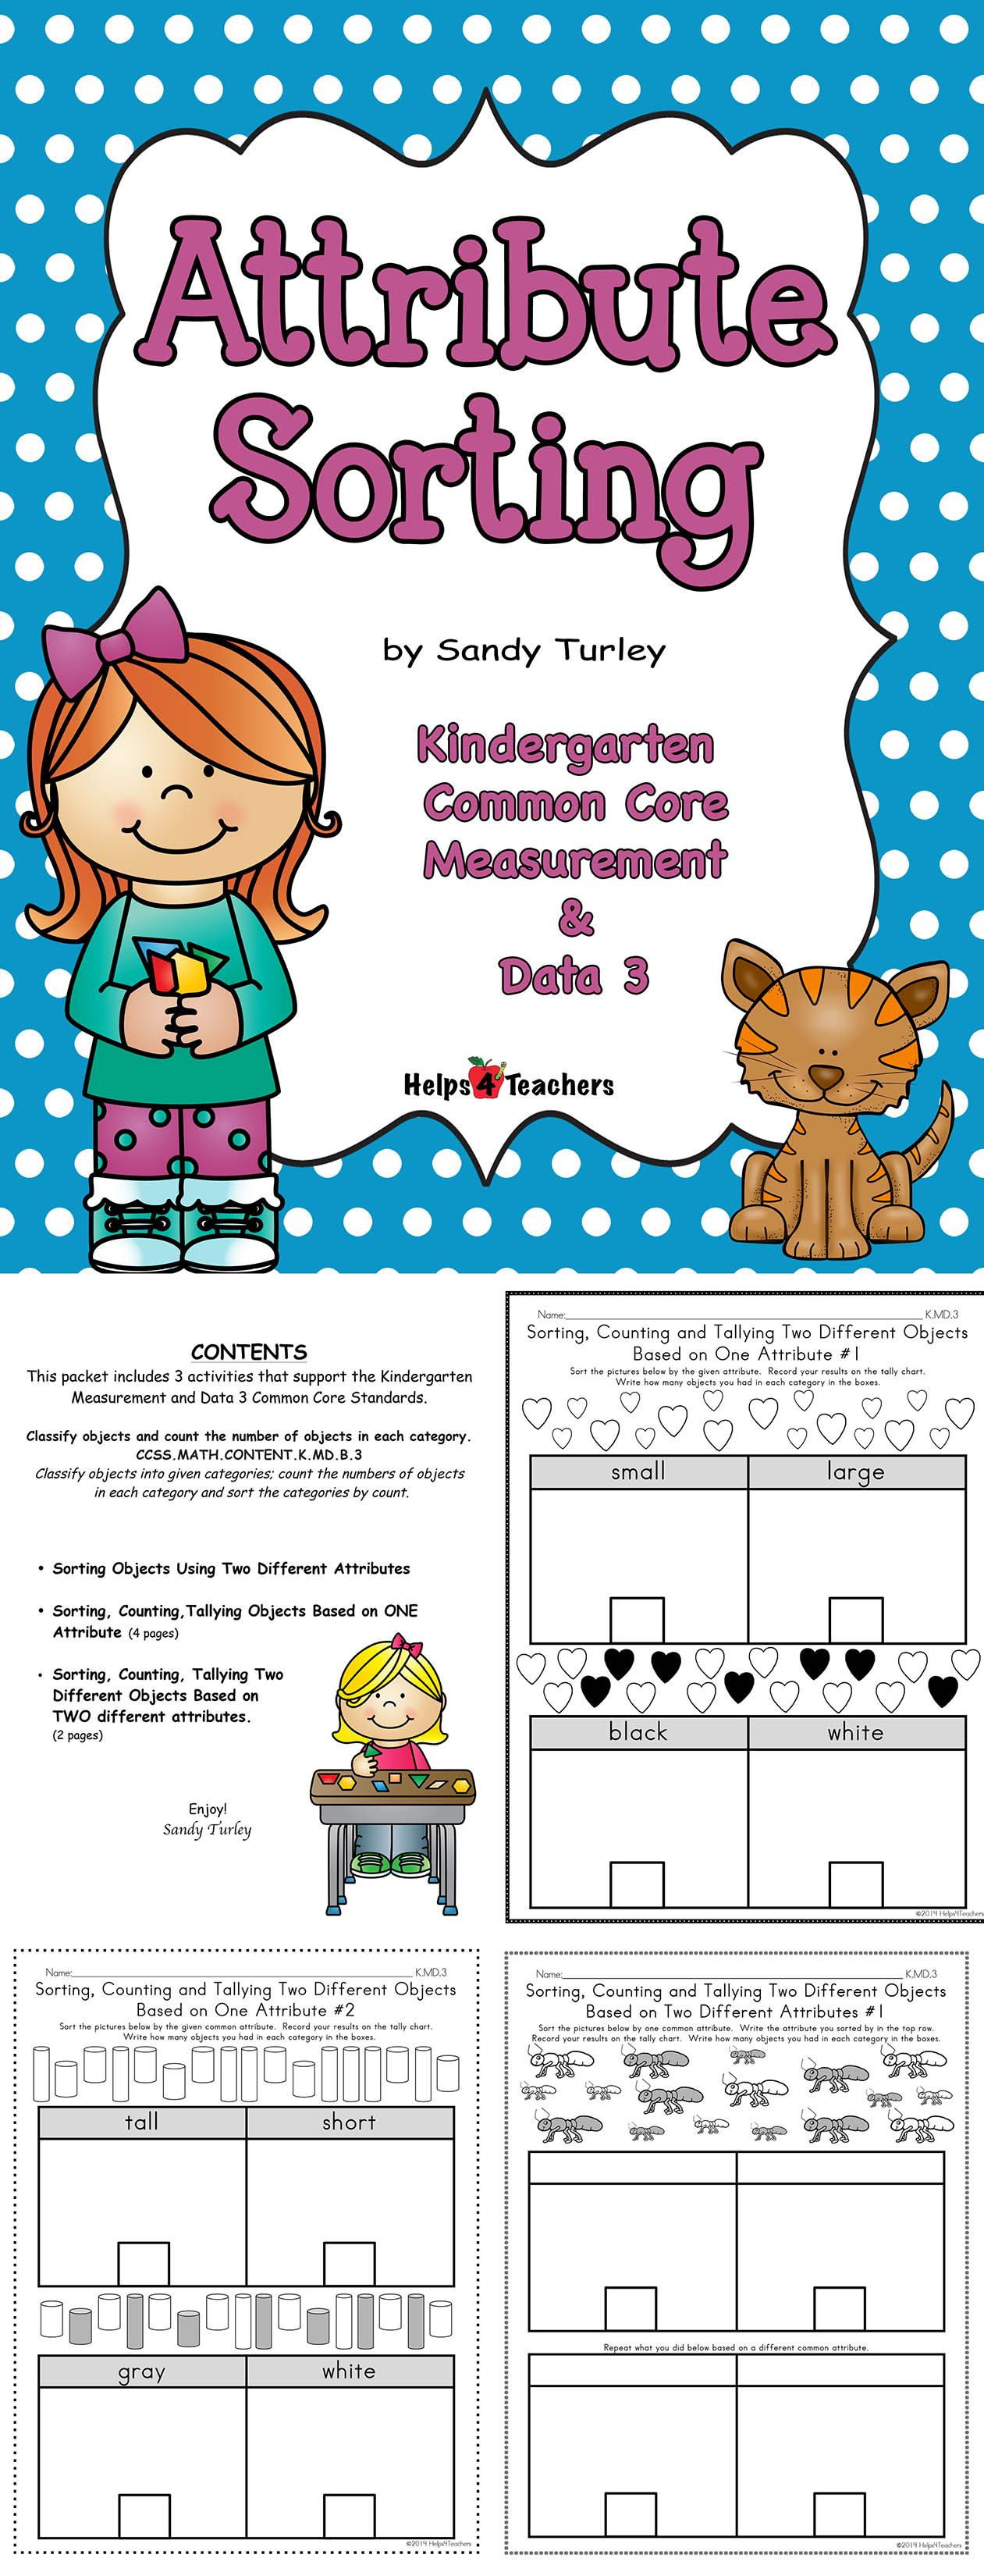 Awesome Packet Includes 7 Activity Sheets That Work On